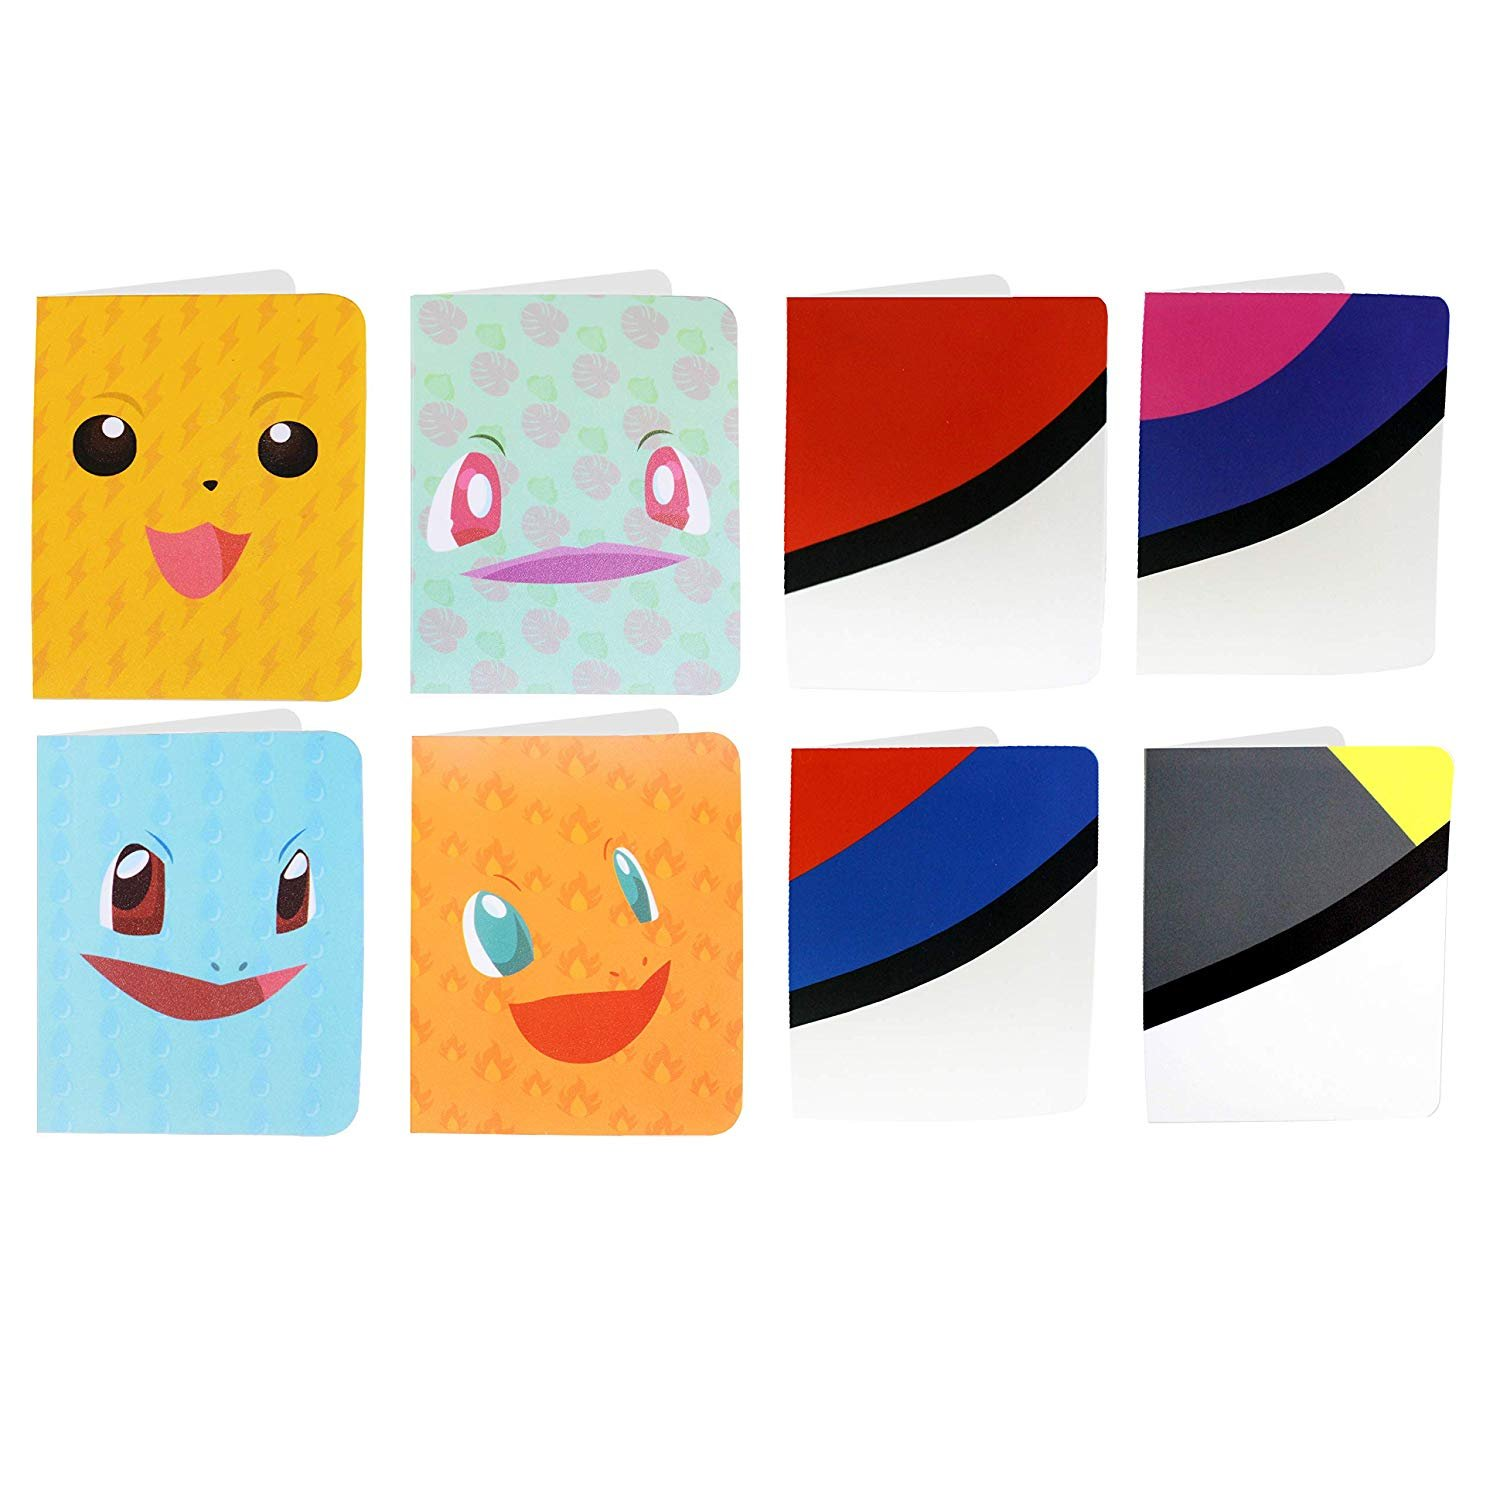 Totem World 4 Graphic Mini Album For Pokemon Cards With 4